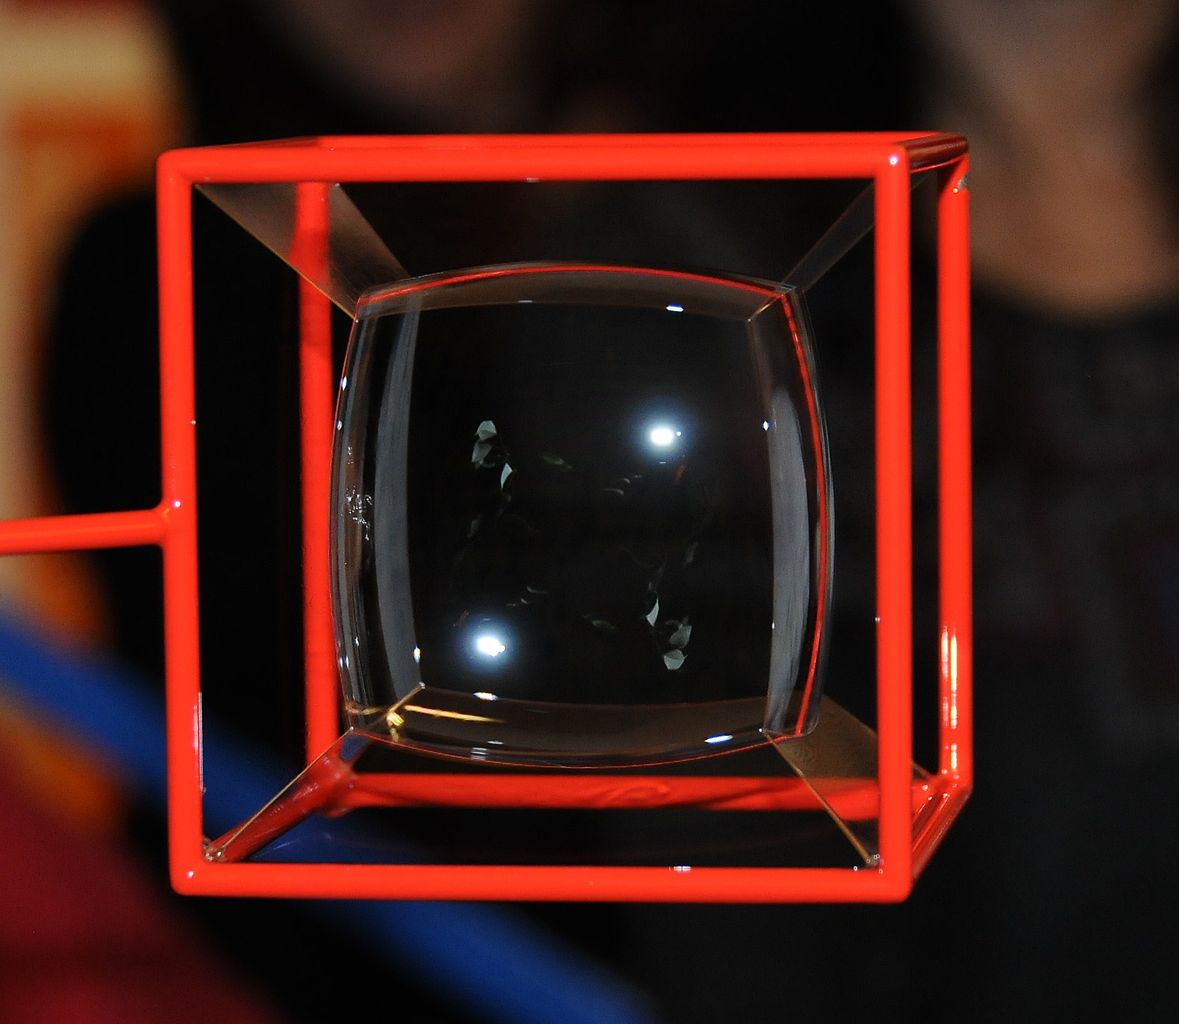 Soap bubbles inside a cube